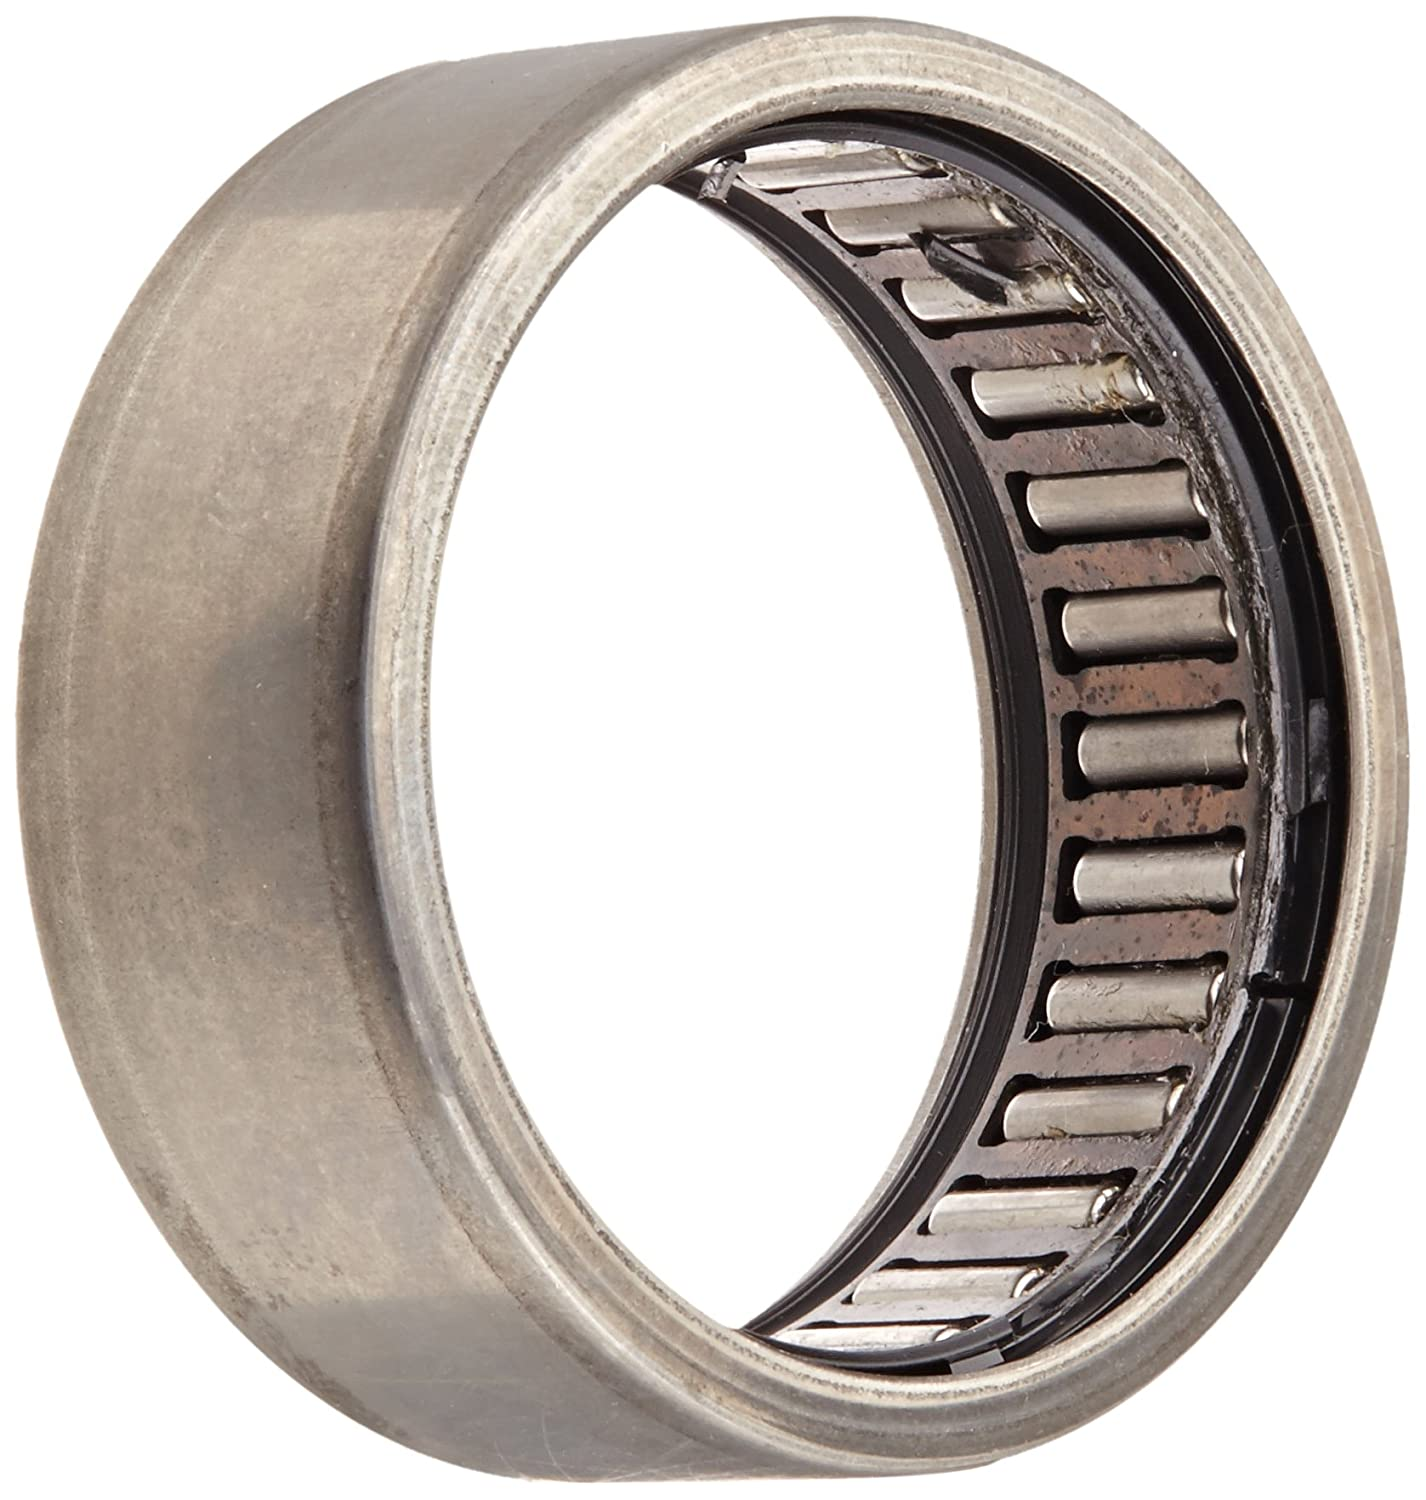 Steel Cage 35mm ID Outer Ring and Roller 5000rpm Maximum Rotational Speed 16mm Width Open End INA HK35162RS Needle Roller Bearing 42mm OD Metric Caged Drawn Cup Double Sealed